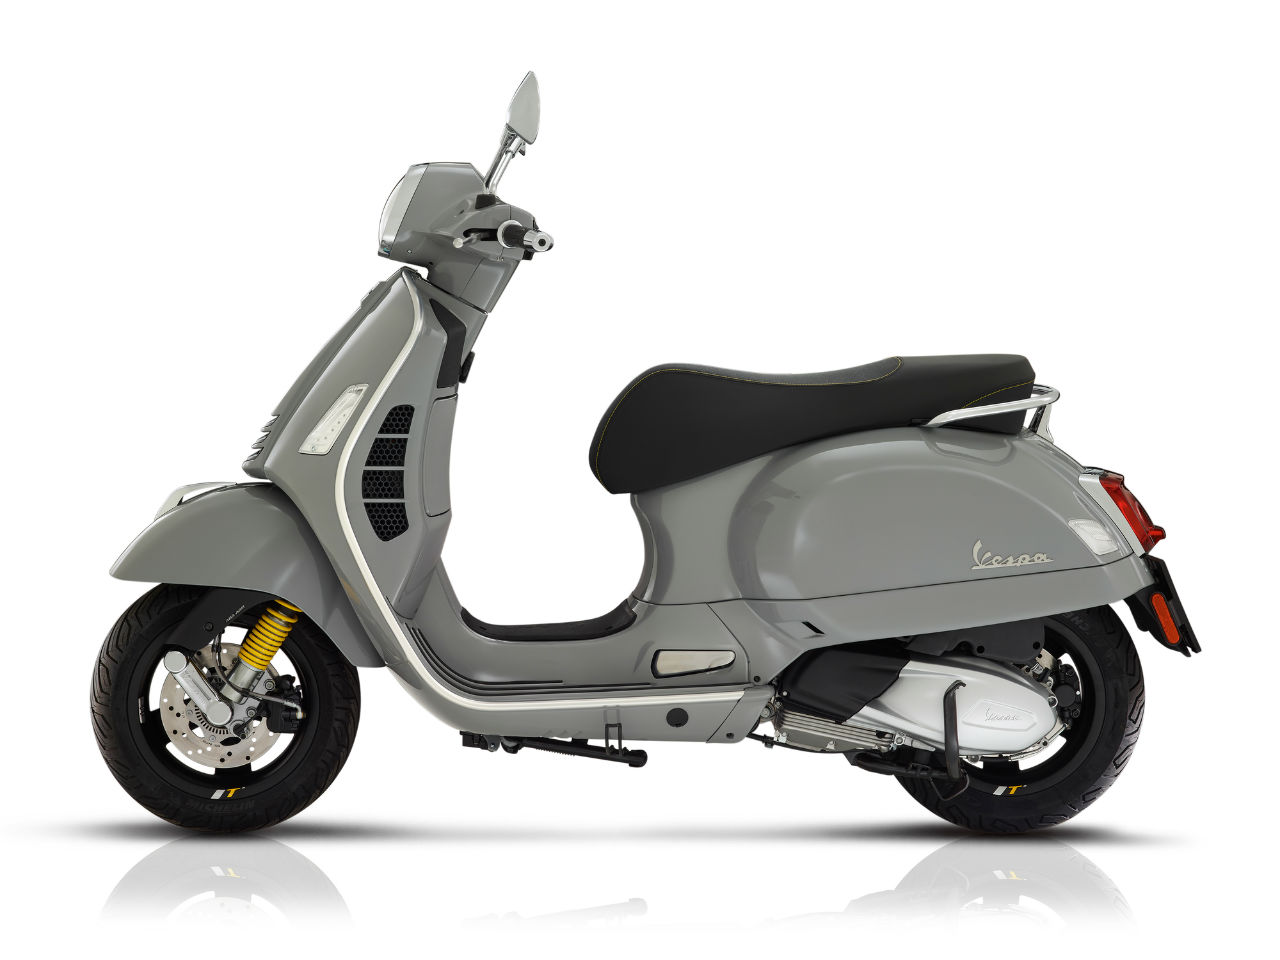 vespa gts 300 gets new high performance engine eicma. Black Bedroom Furniture Sets. Home Design Ideas